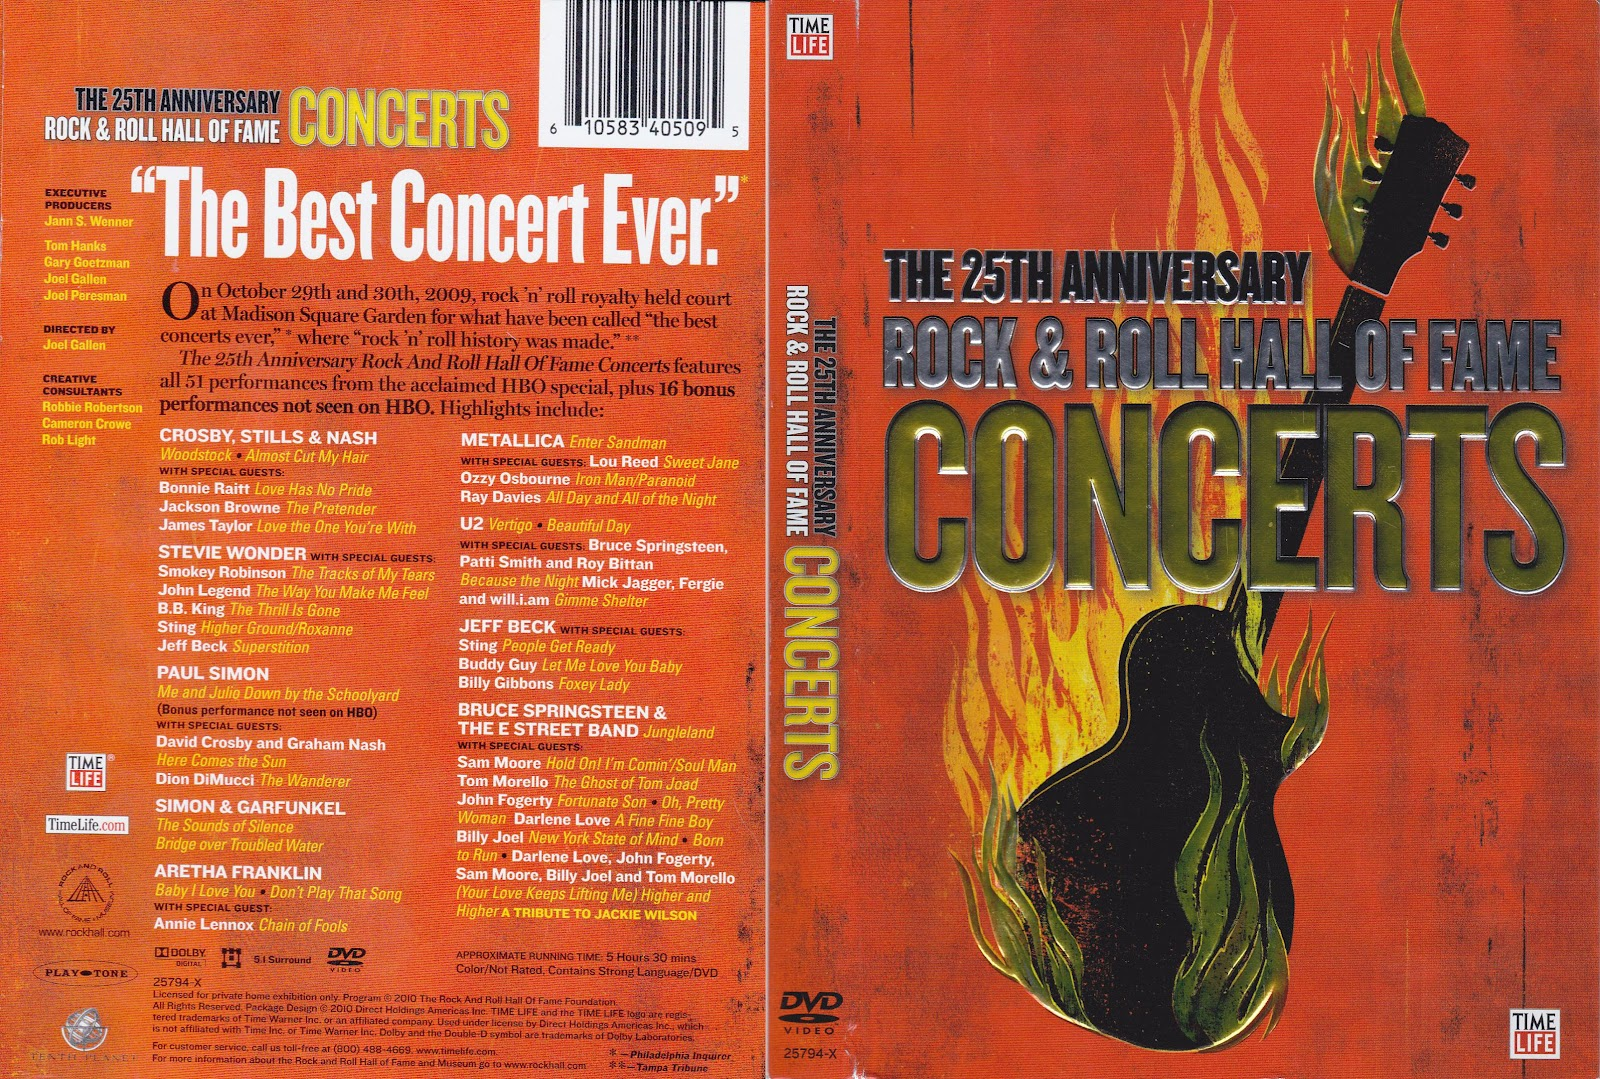 25th anniversary of rock and roll hall of fame dvd